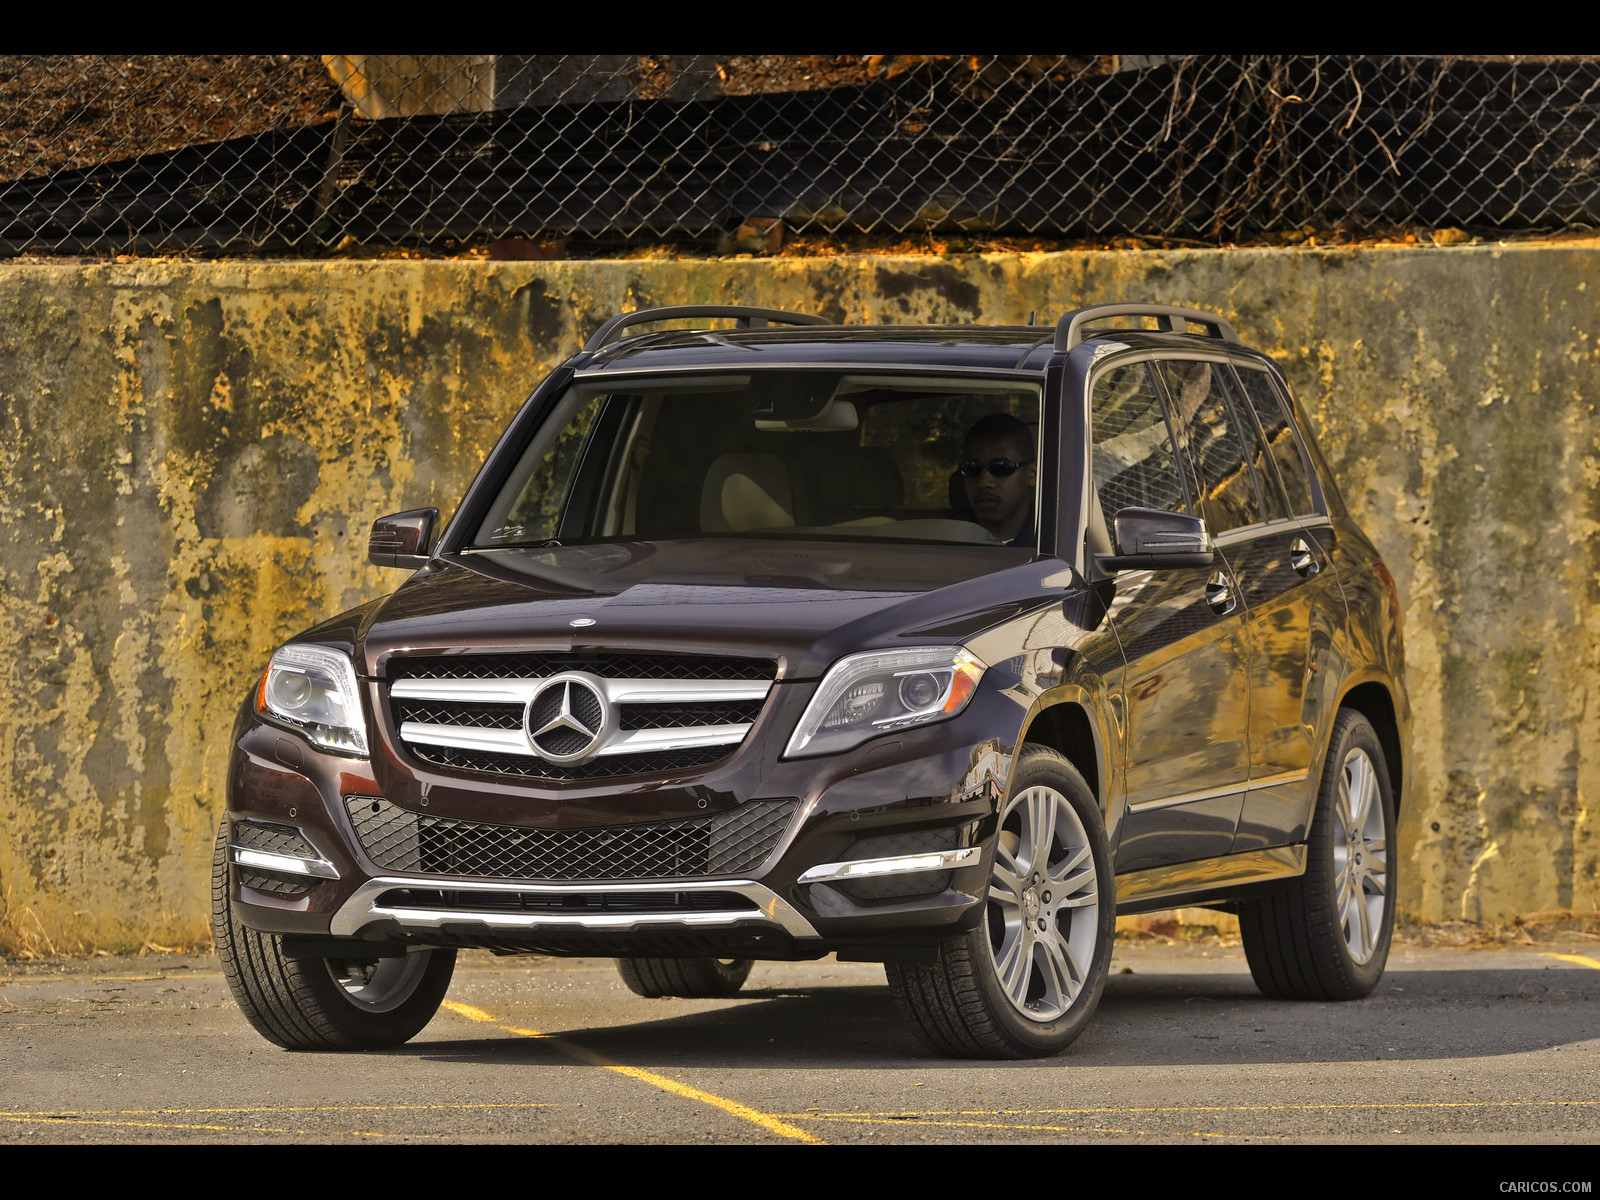 Mercedes benz glk 350 4matic photos reviews news specs for Mercedes benz glk 350 review